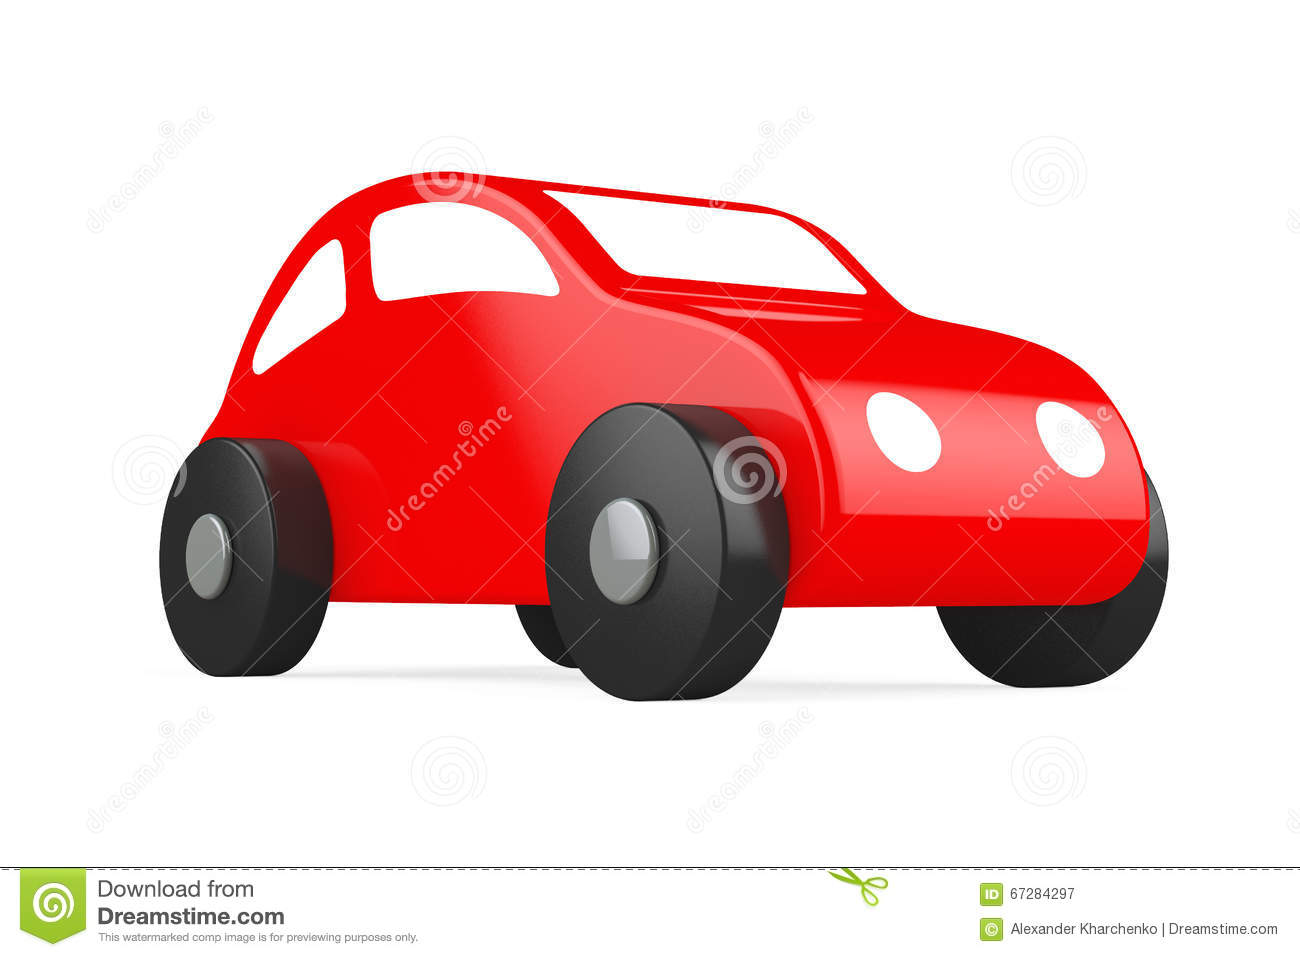 5 060 Cartoon Car Photos Free Royalty Free Stock Photos From Dreamstime